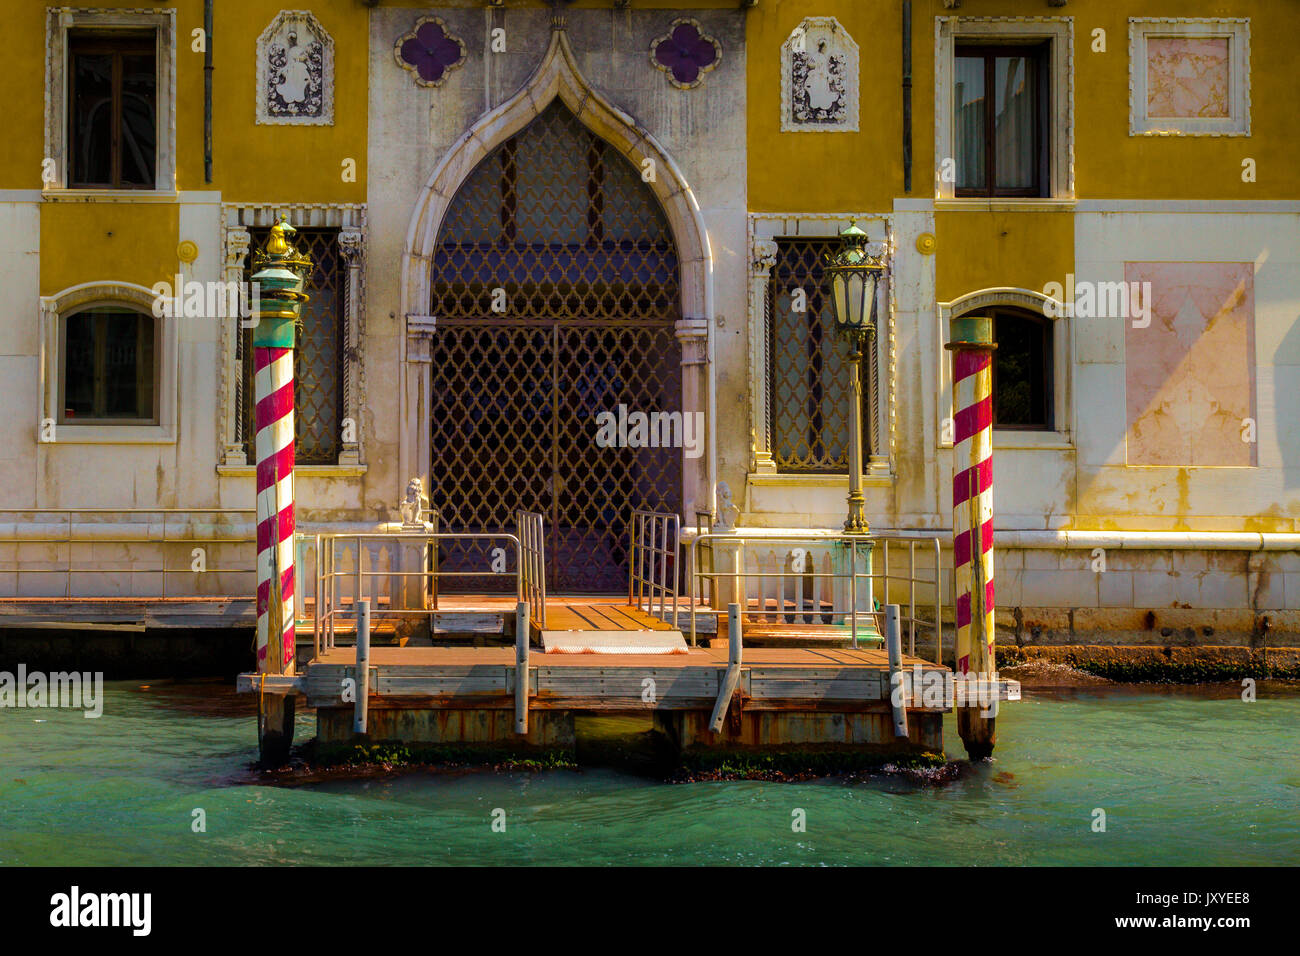 Entrance to a building just off the Grand Canal in Venice, Italy - Stock Image